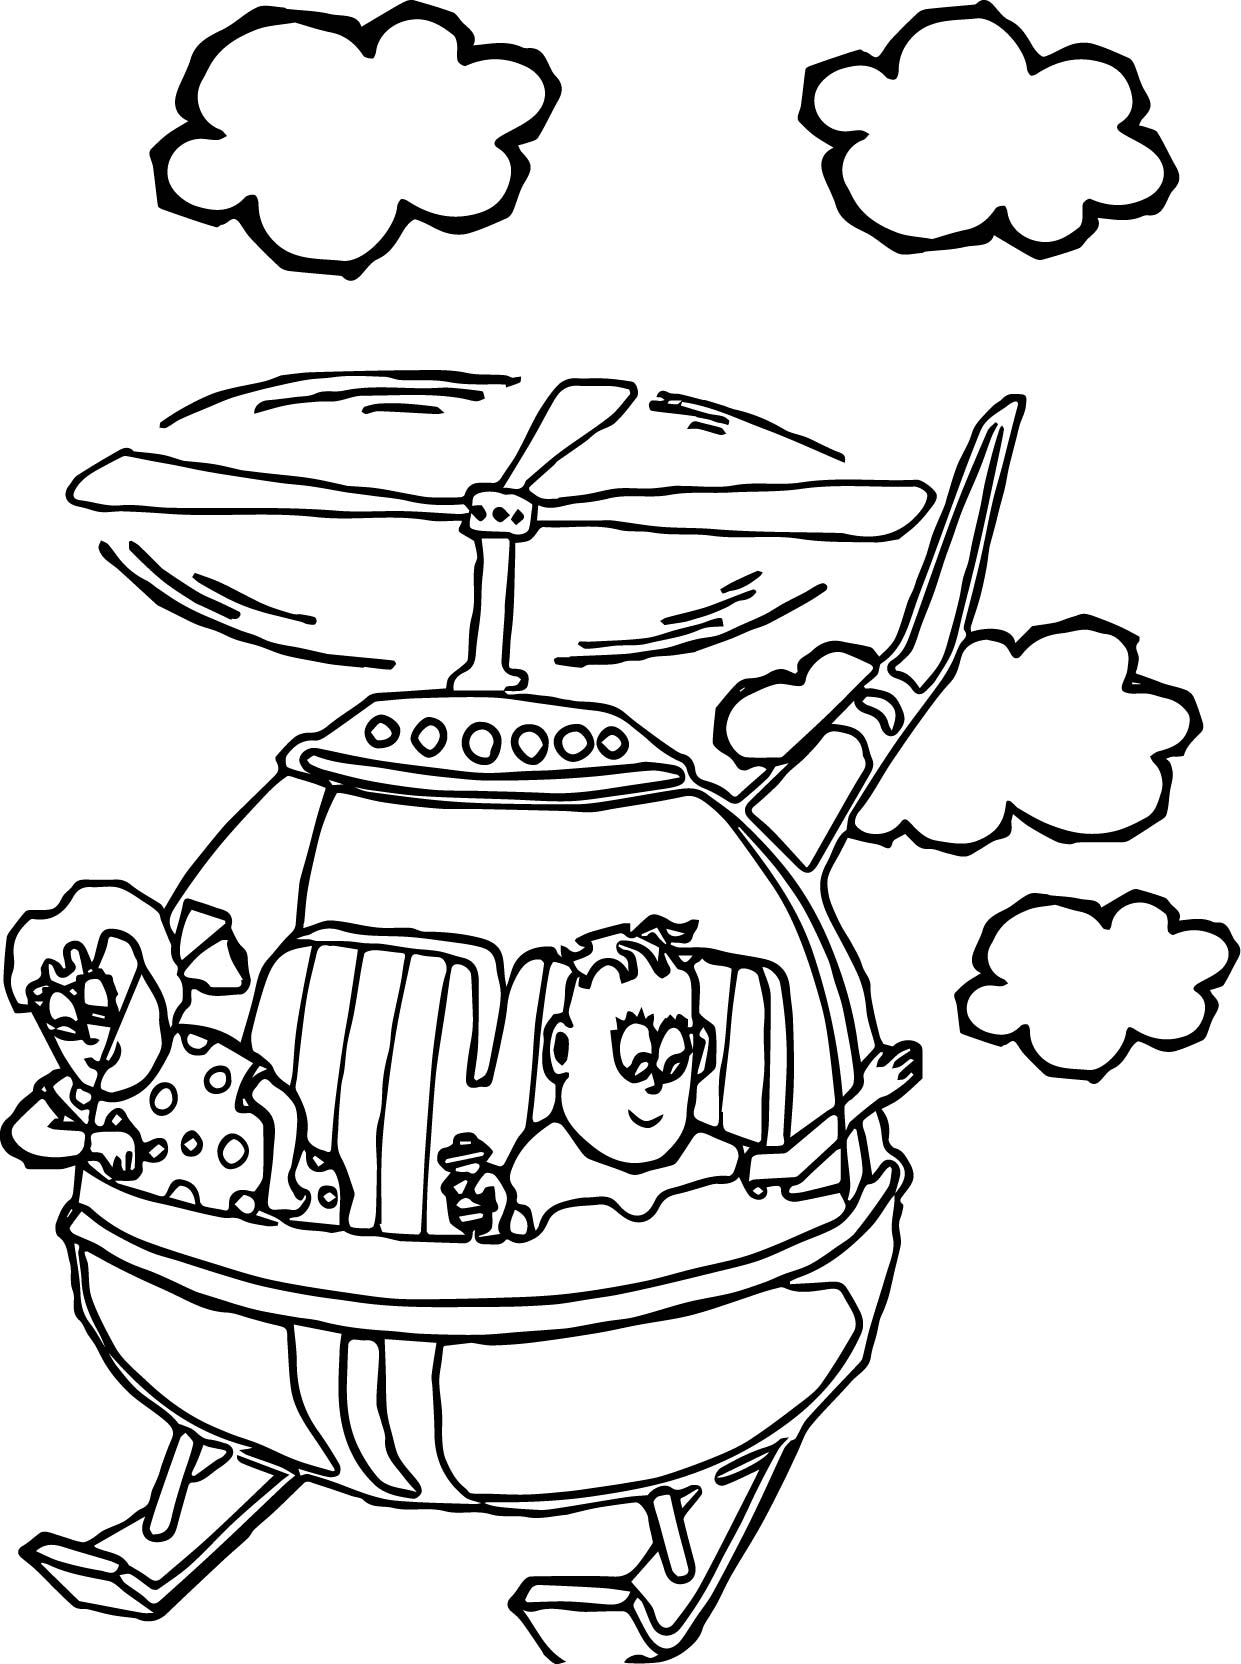 helicopter coloring page top army helicopter helicopter coloring